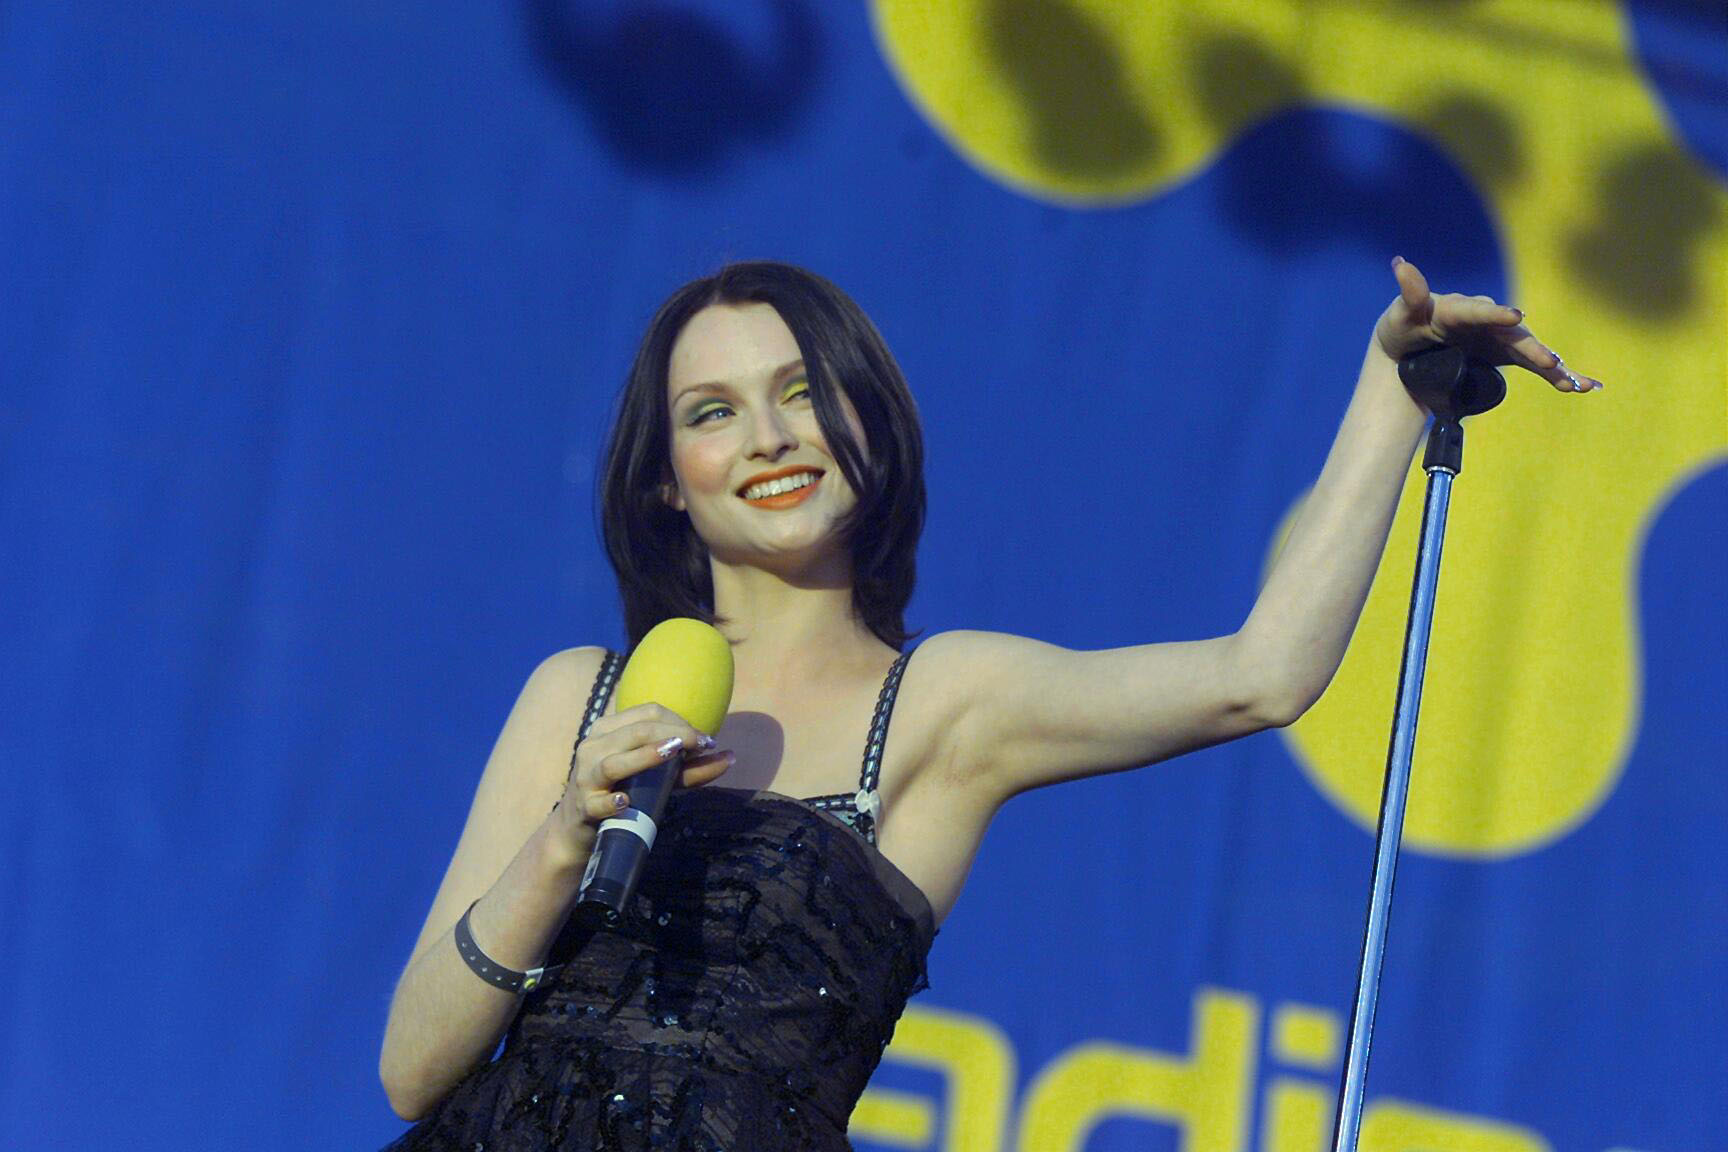 Sophie Ellis-Bextor performs during the Radio City Party at the Pier 2001 in Liverpool.   (Photo by PA Images via Getty Images)